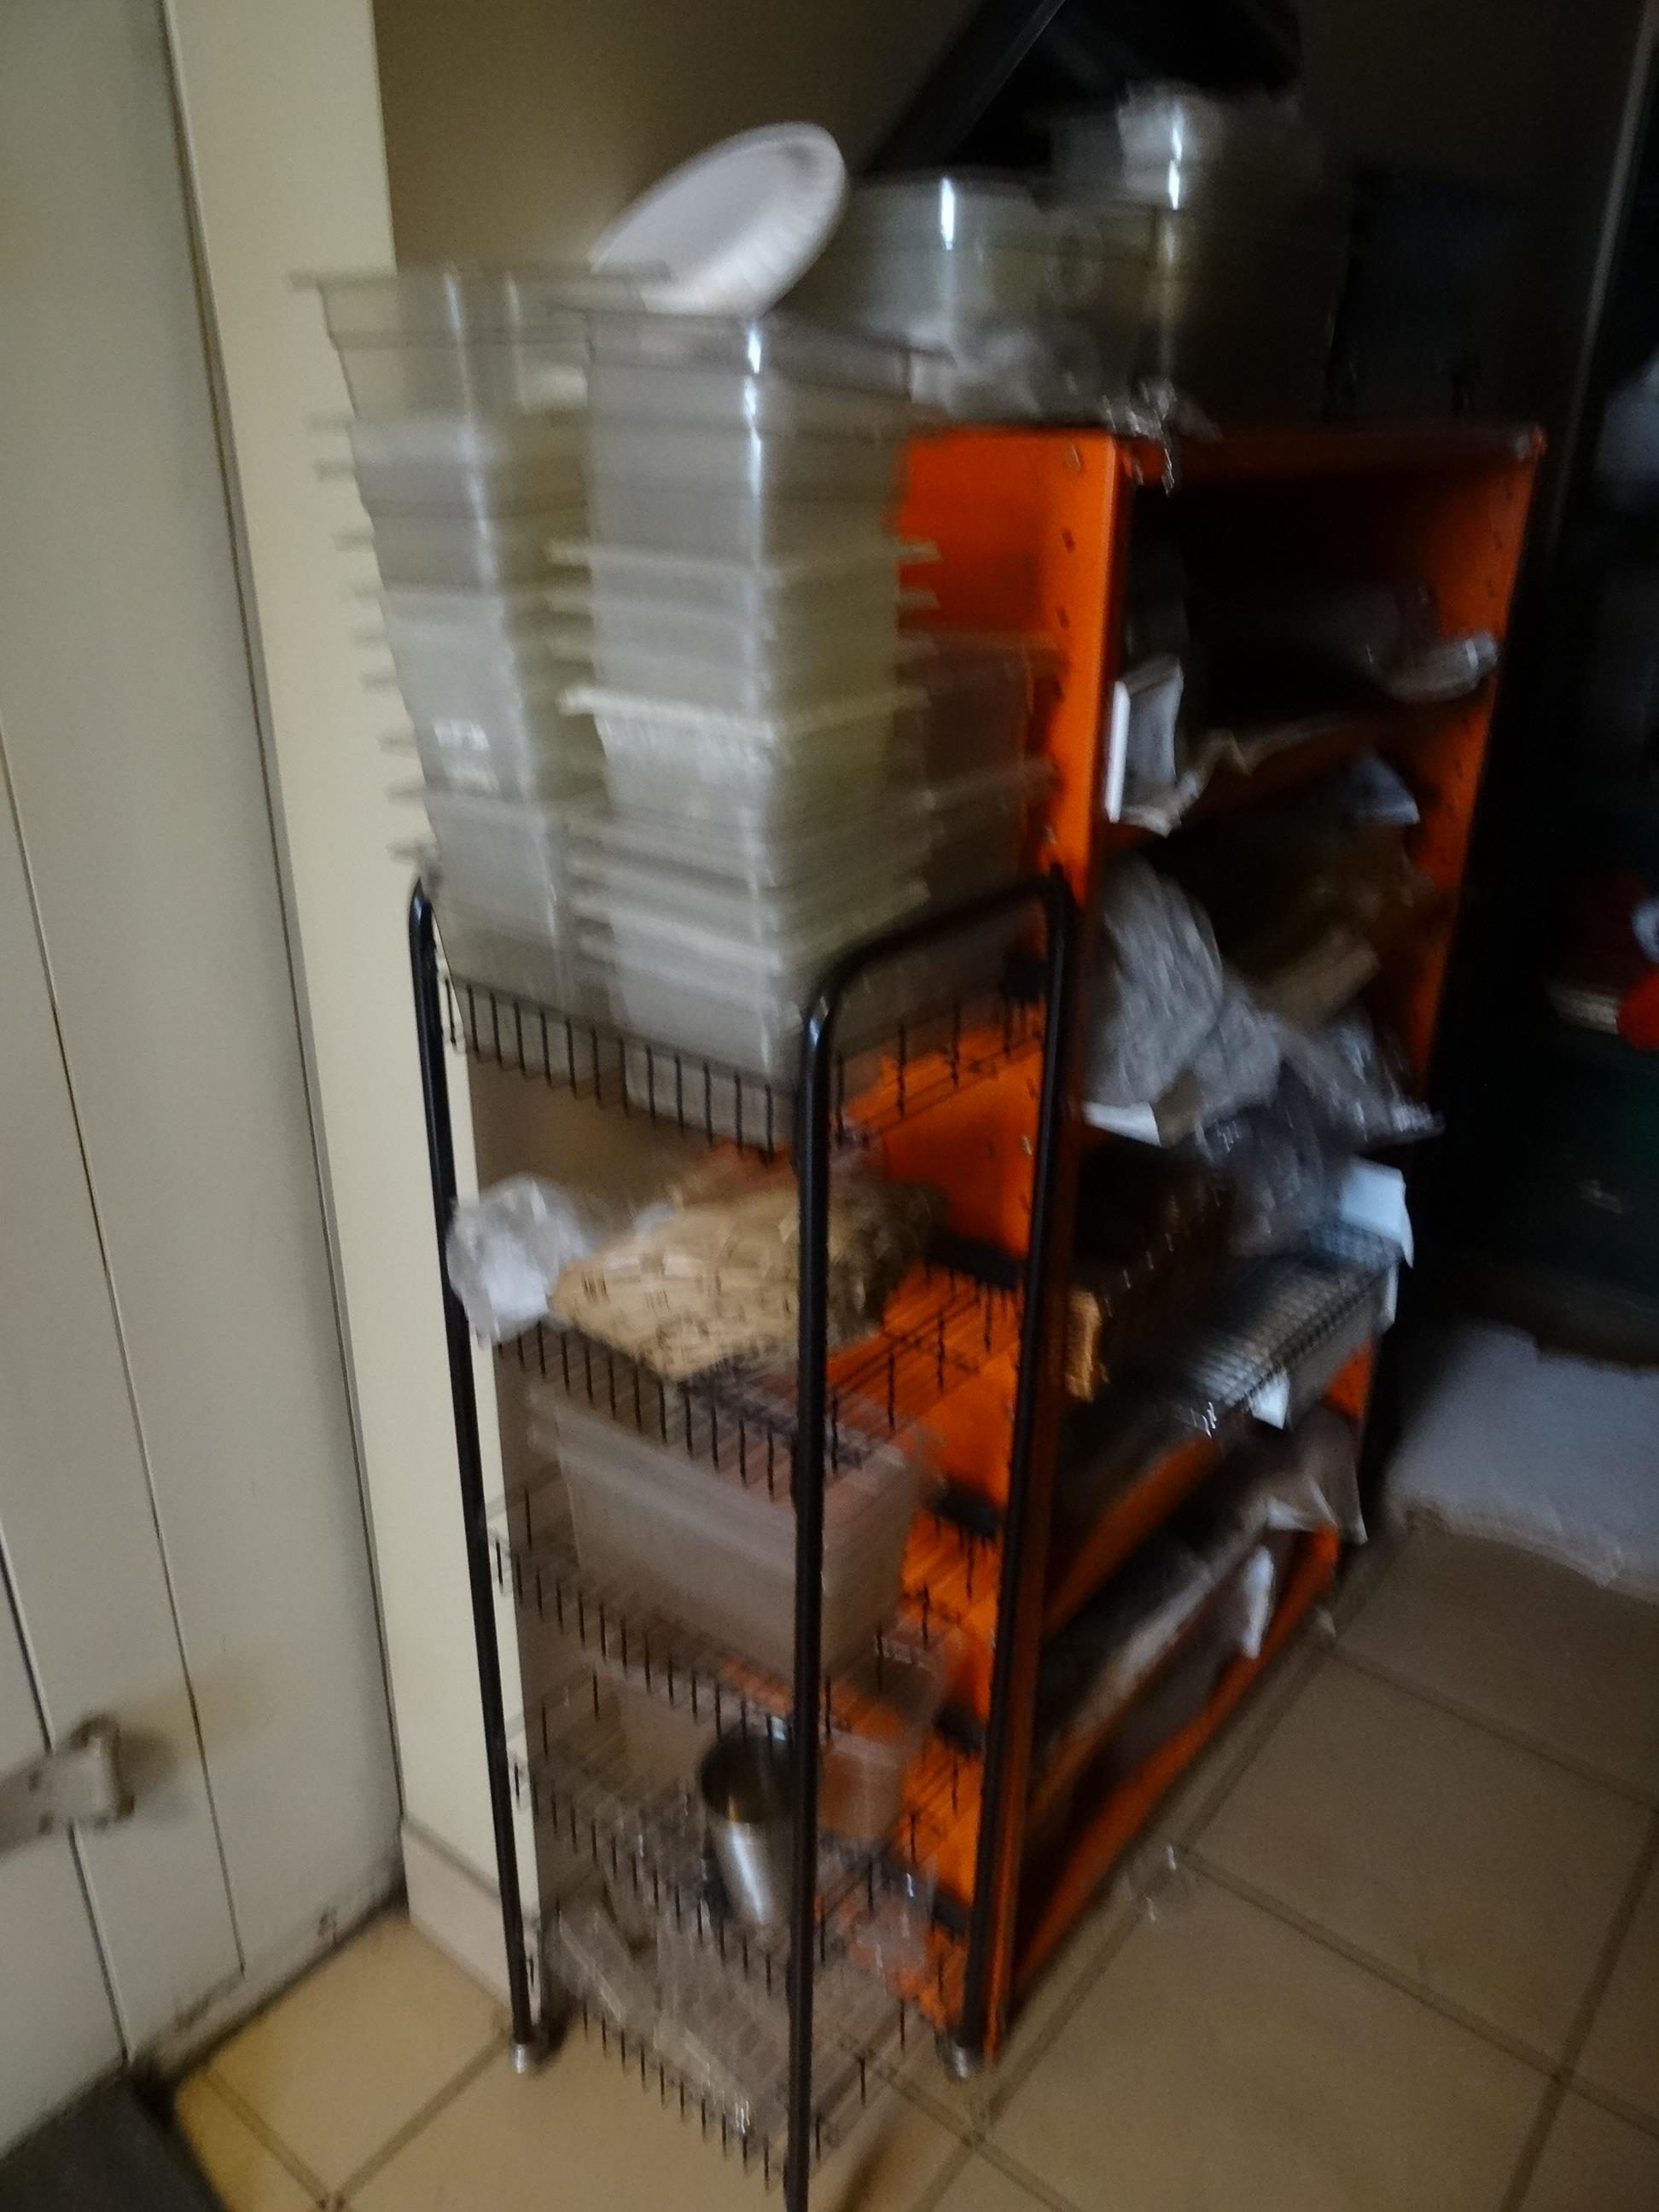 LOT, CONTENTS OF STORAGE ROOM - Image 2 of 5